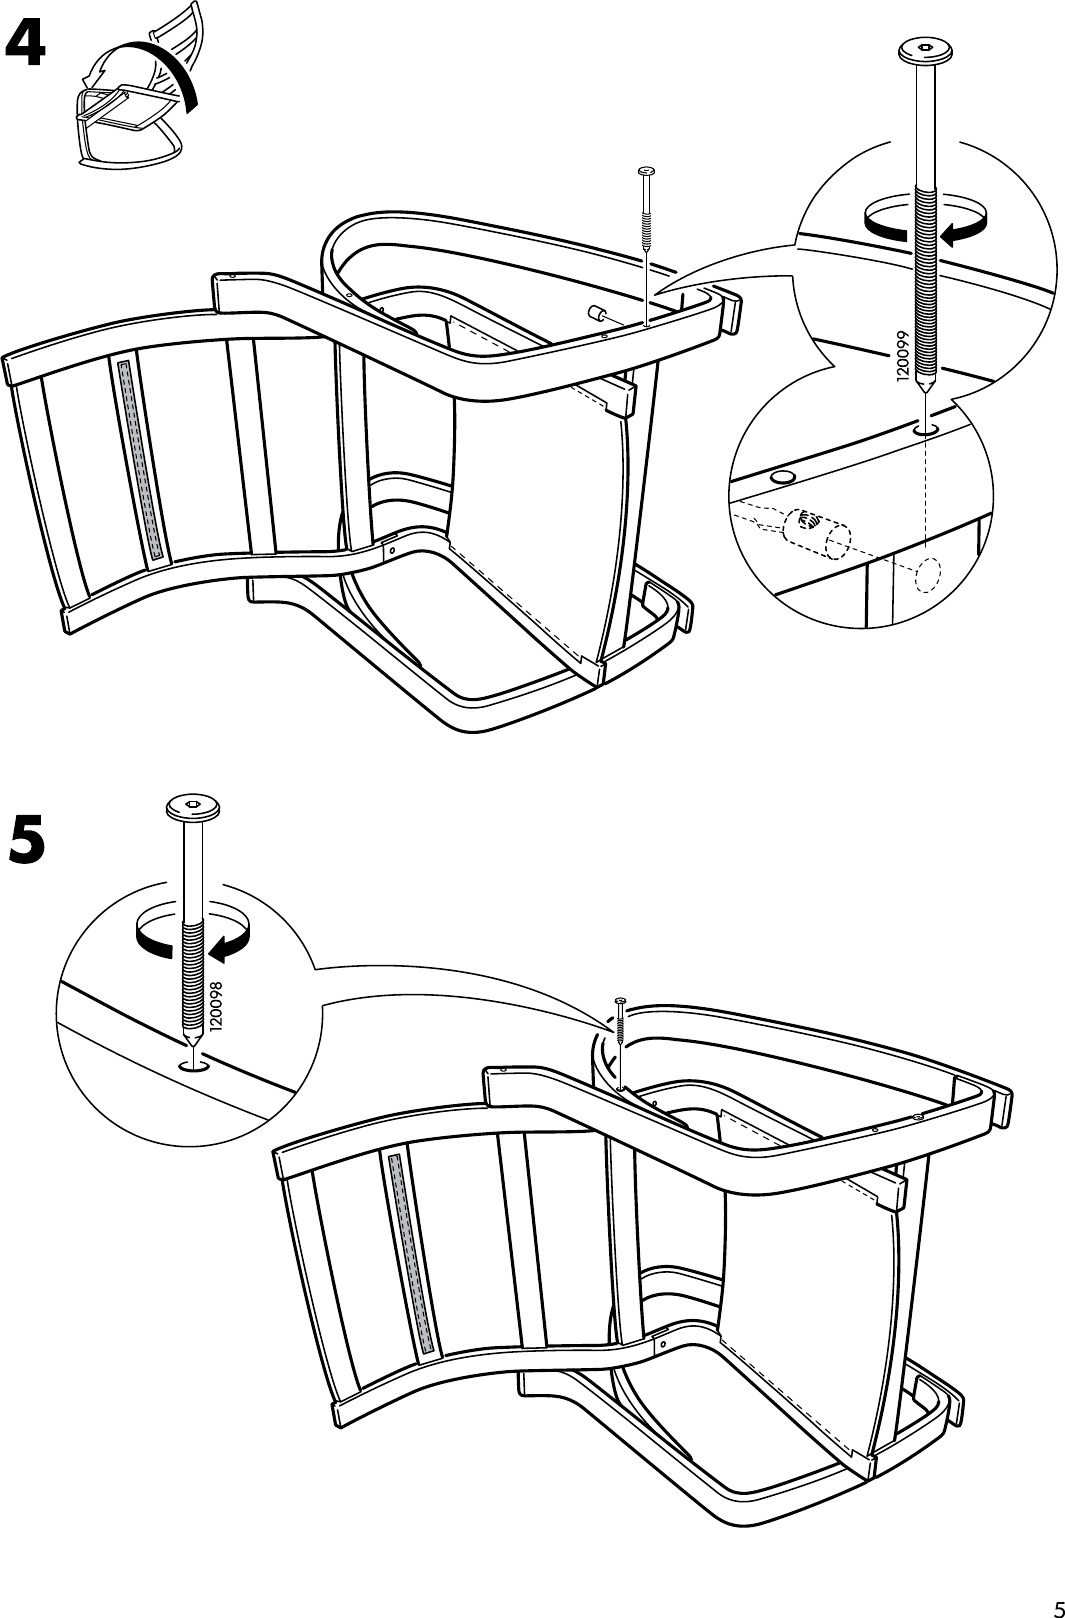 Ikea Poang Rocking Chair Frame Assembly Instruction